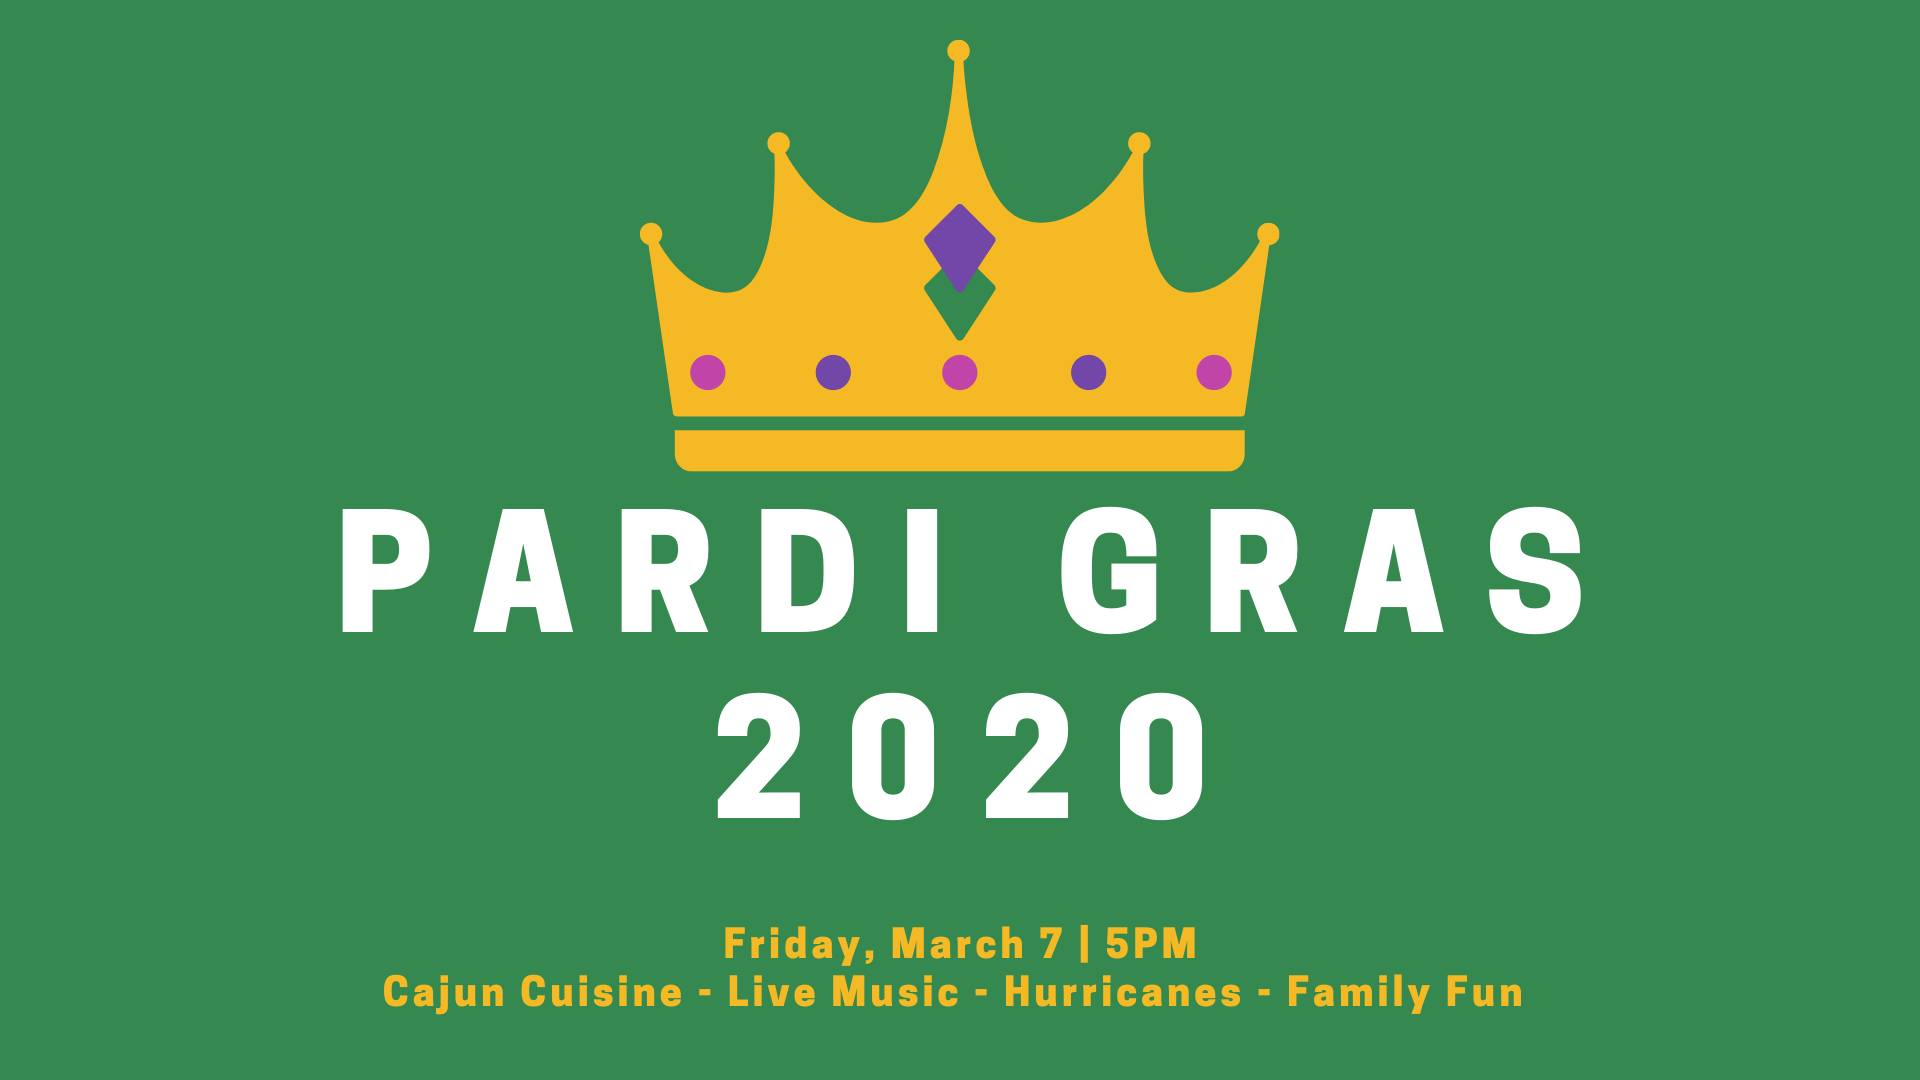 Pardi Gras at Retro March 6 2020